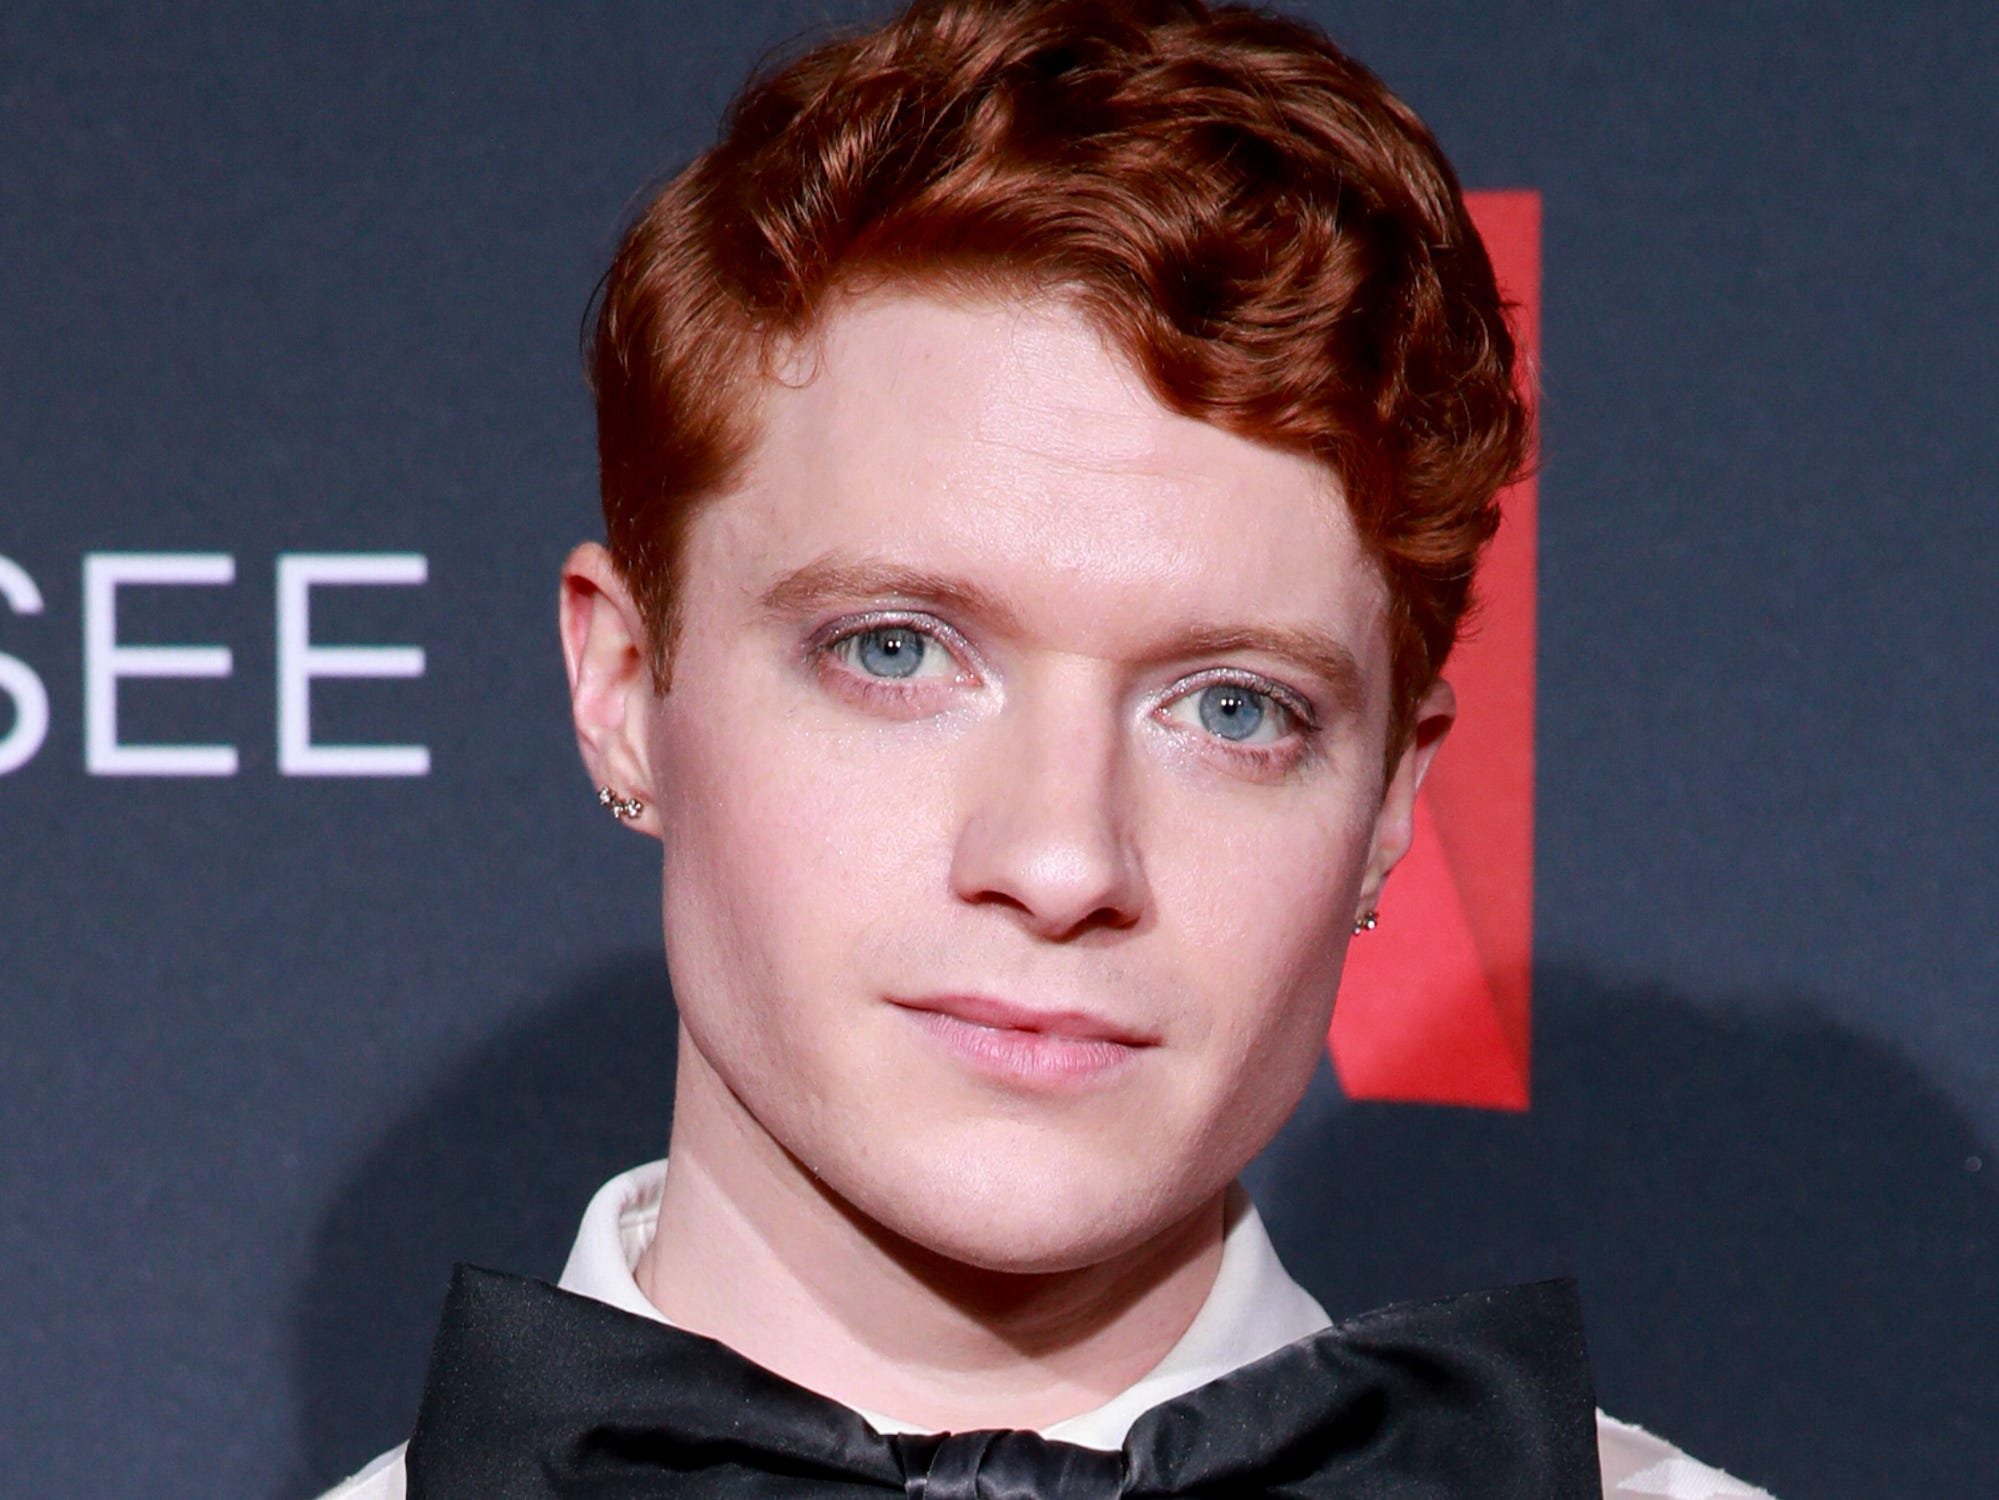 Brendan Scannell attends the Prom Night photo call at Netflix FYSEE At Raleigh Studios on May 17, 2019 in Los Angeles, Calif.